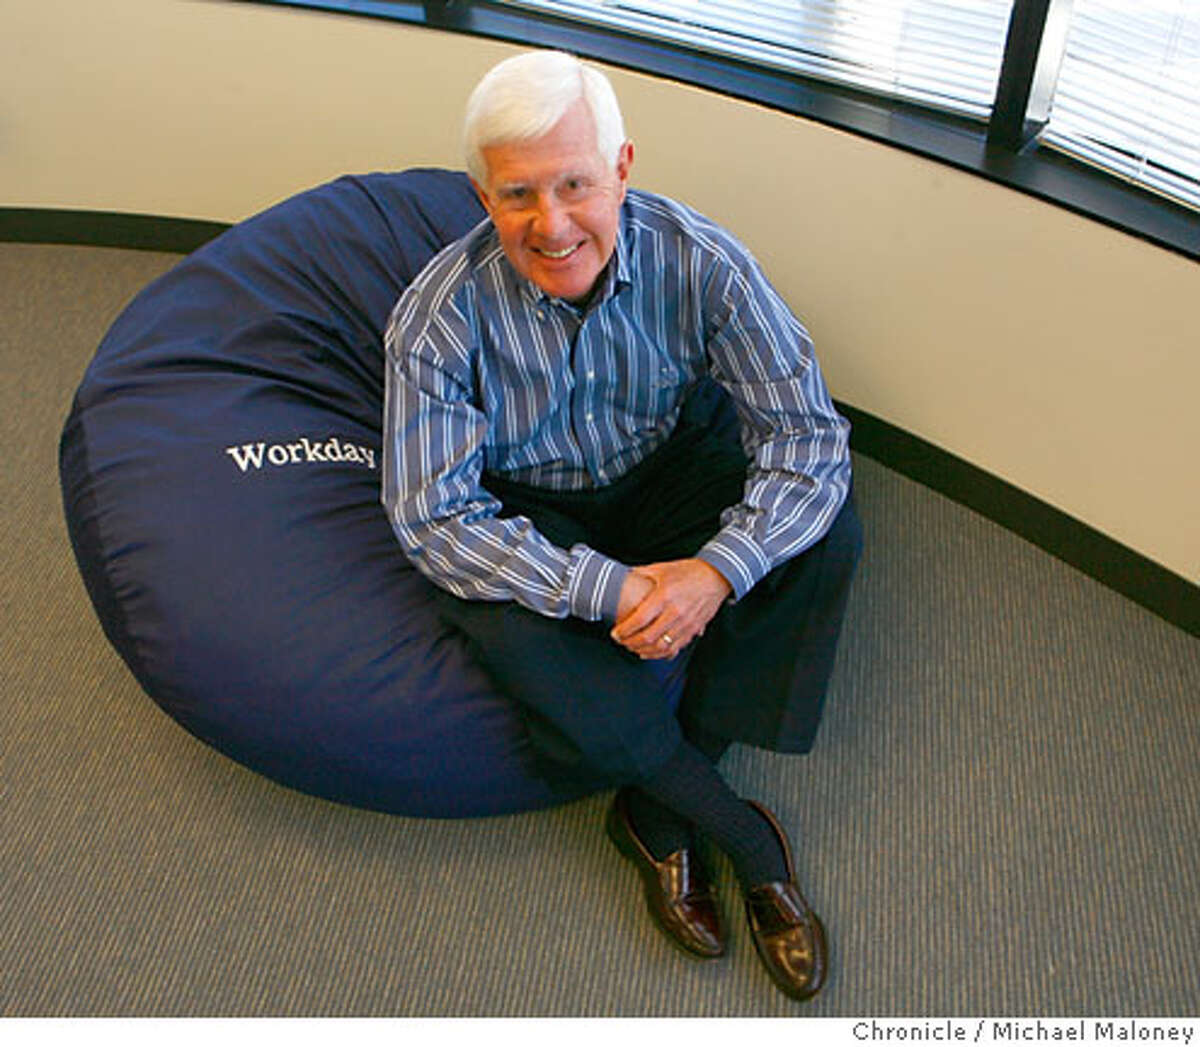 Dave Duffield poses in one of the bean bag chairs set up in the company's game room.After fighting the hostile takeover of his company, PeopleSoft, Dave Duffield founded a new startup in Walnut Creek with 107 employees called Workday. And that startup is taking bold aim at his old nemesis, Oracle's Larry Ellison, by selling software that lets companies manage business tasks via the Internet instead of installing costly programs on company computers. Photo by Michael Maloney / San Francisco Chronicle Photo taken on 6/8/07 in Walnut Creek, CA *** Ran on: 06-17-2007 David Duffield relaxes in a beanbag chair in the game room at Workday, where the congenial atmosphere is a reminder of his days at PeopleSoft. Ran on: 06-17-2007 David Duffield relaxes in a beanbag chair in the game room at Workday, where the congenial atmosphere is a reminder of his days at PeopleSoft.